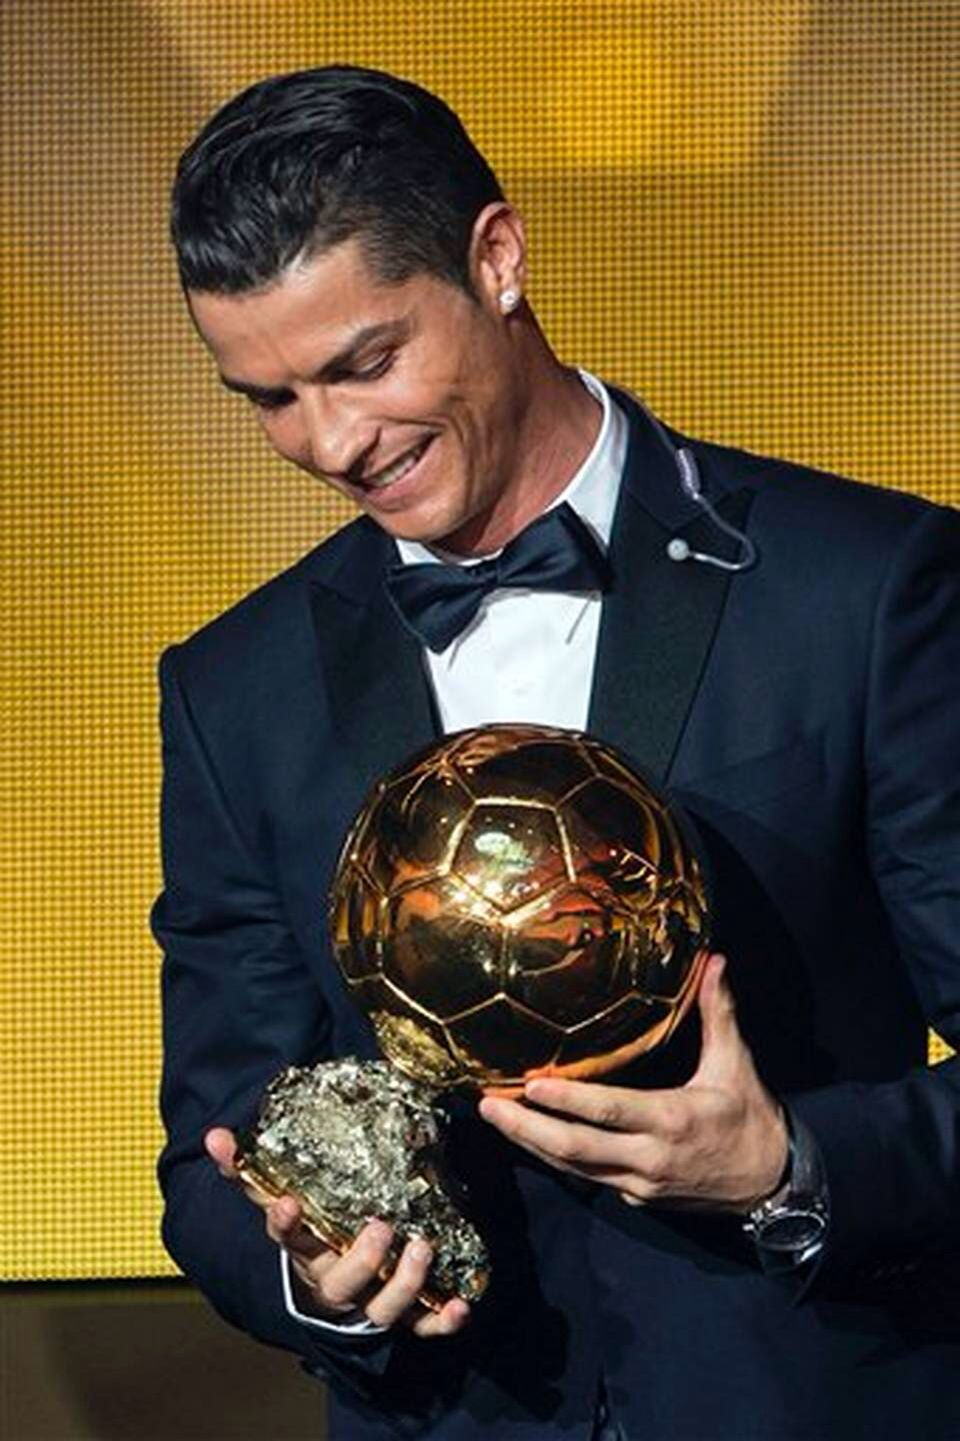 Cristiano ronaldo balon duor winner cr pinterest